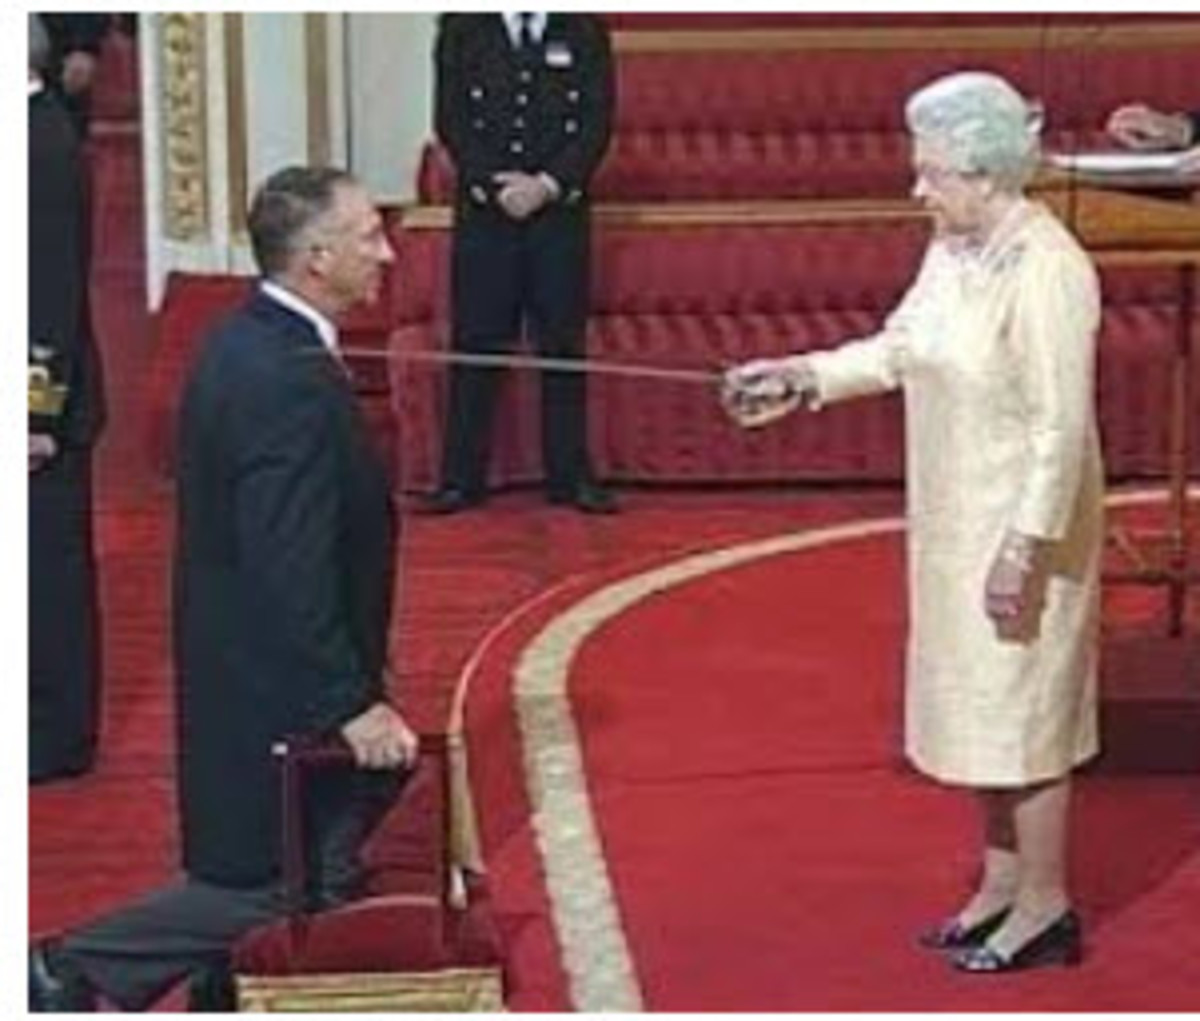 In the context of a knighting process, kneeling is generally seen as a sign of respect.